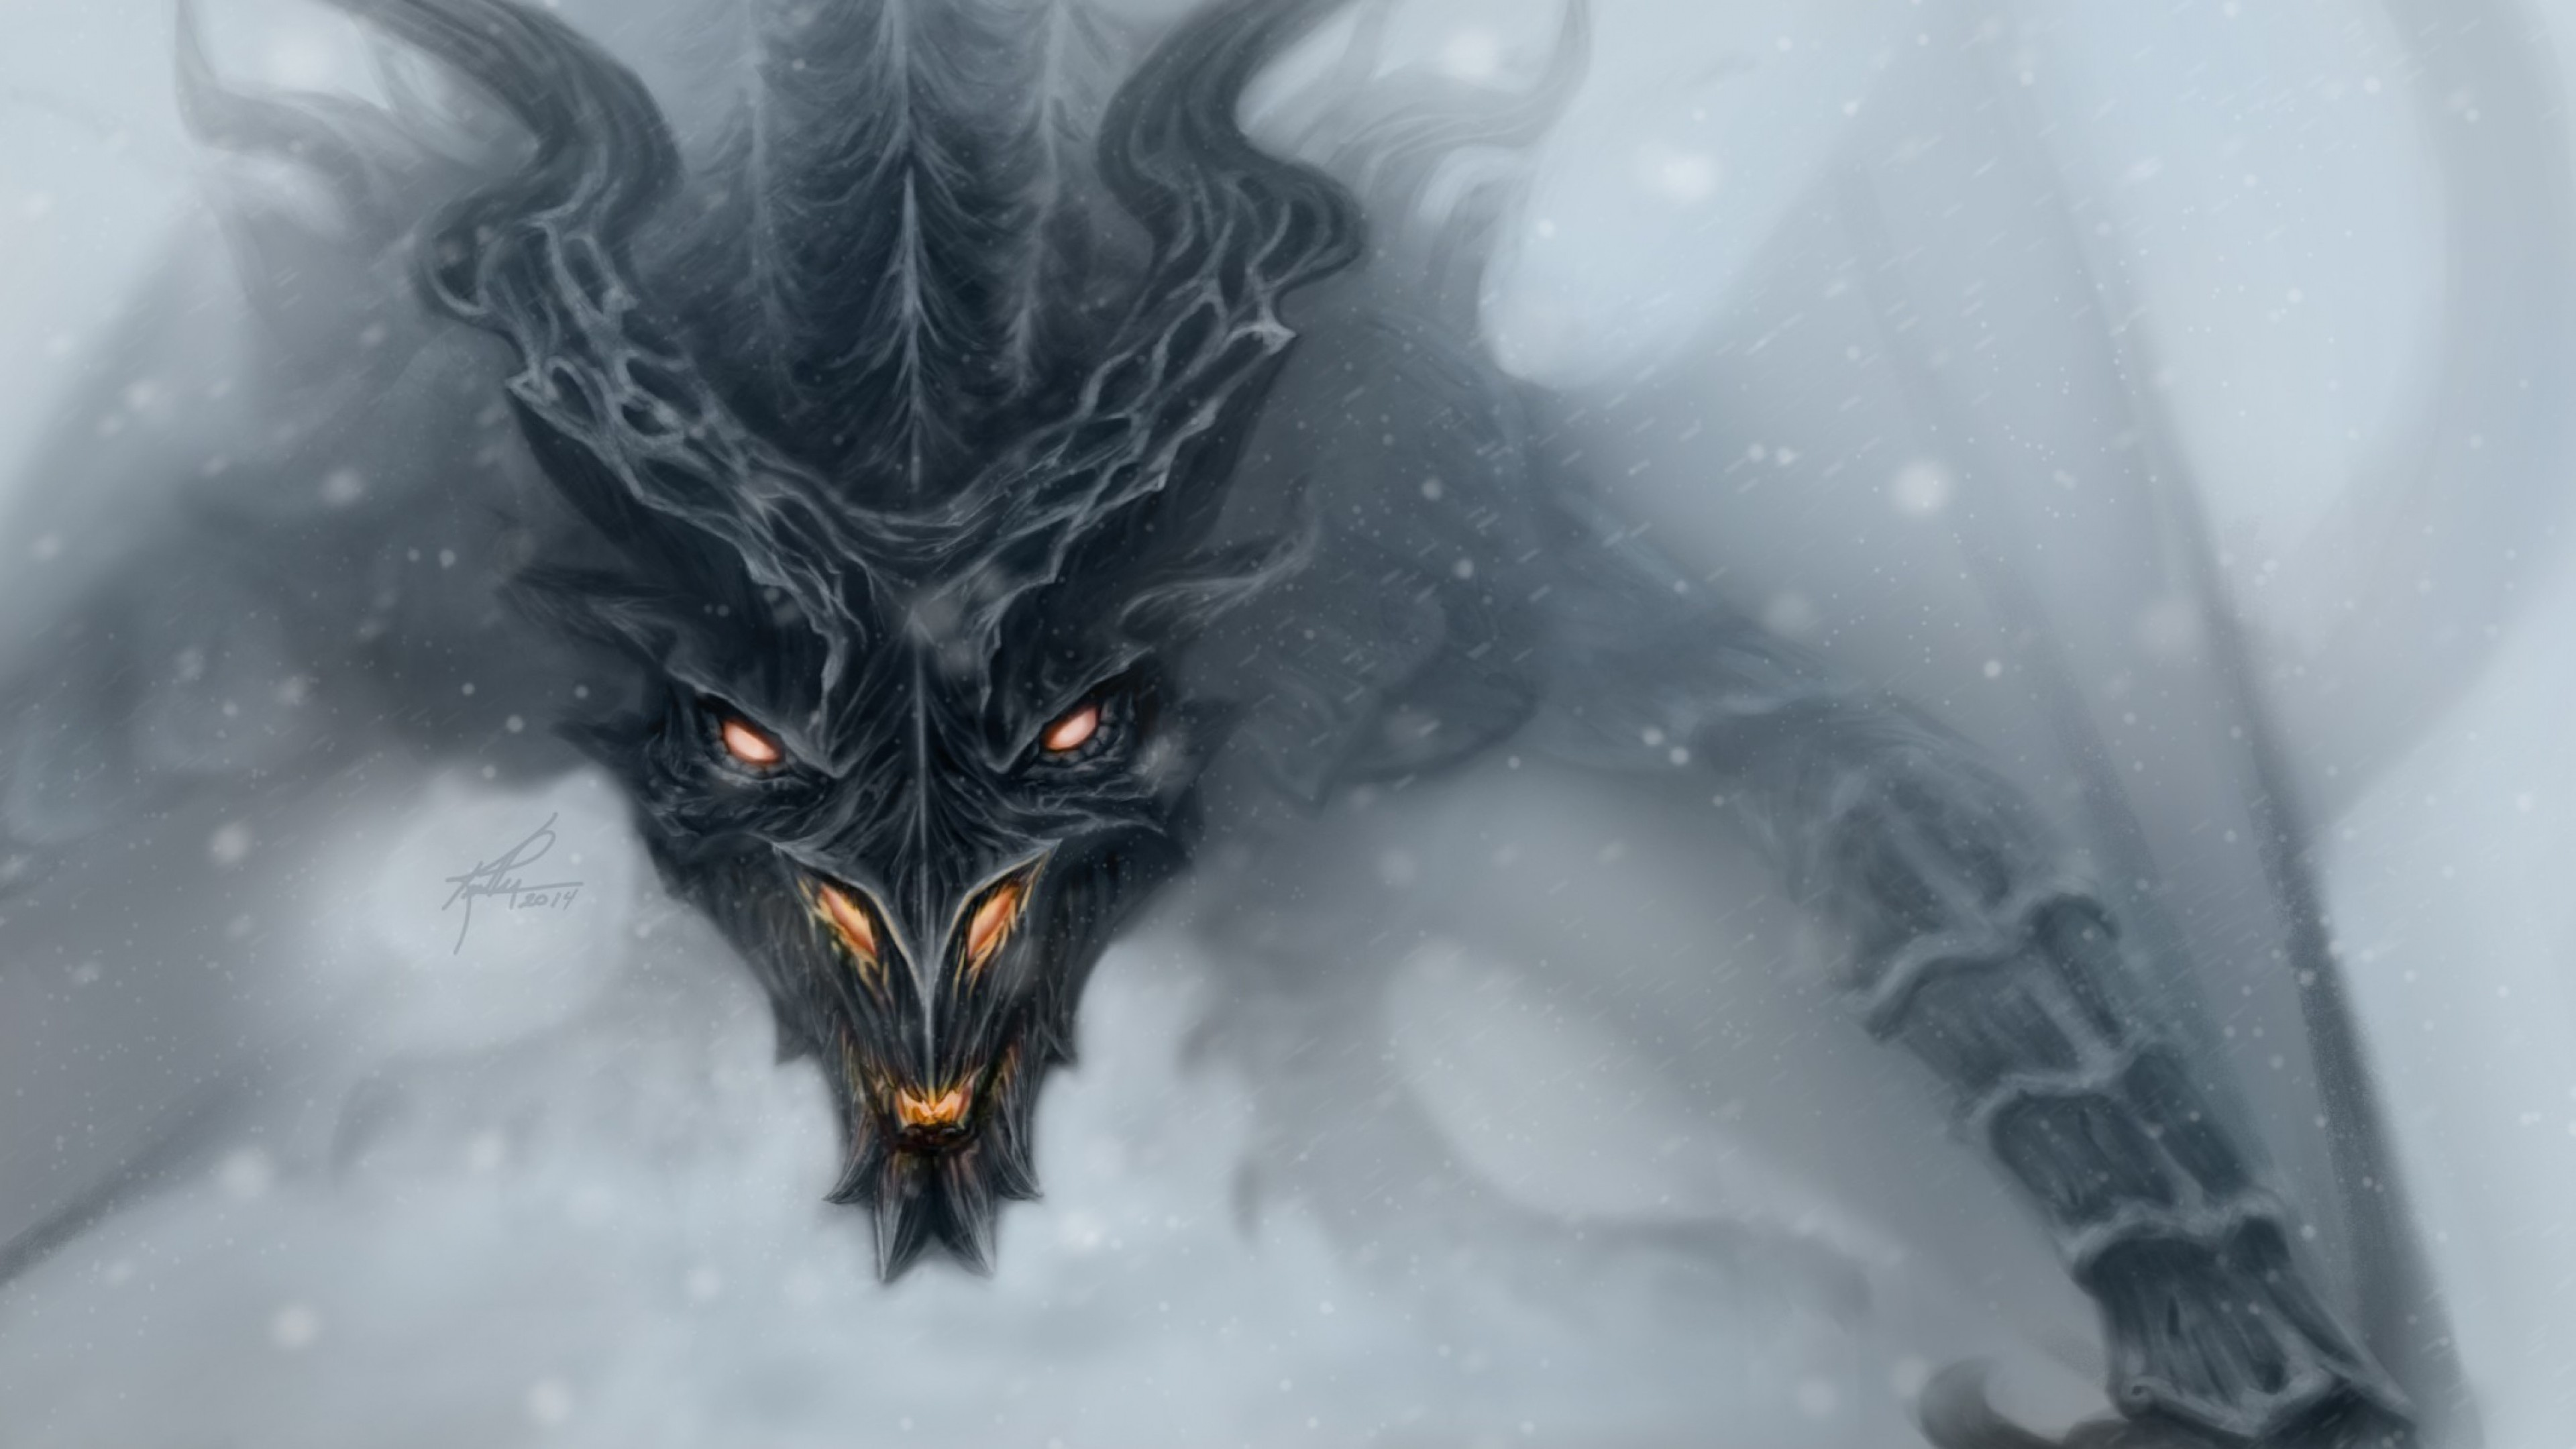 4K Cool Dragon Wallpapers (46+ images)